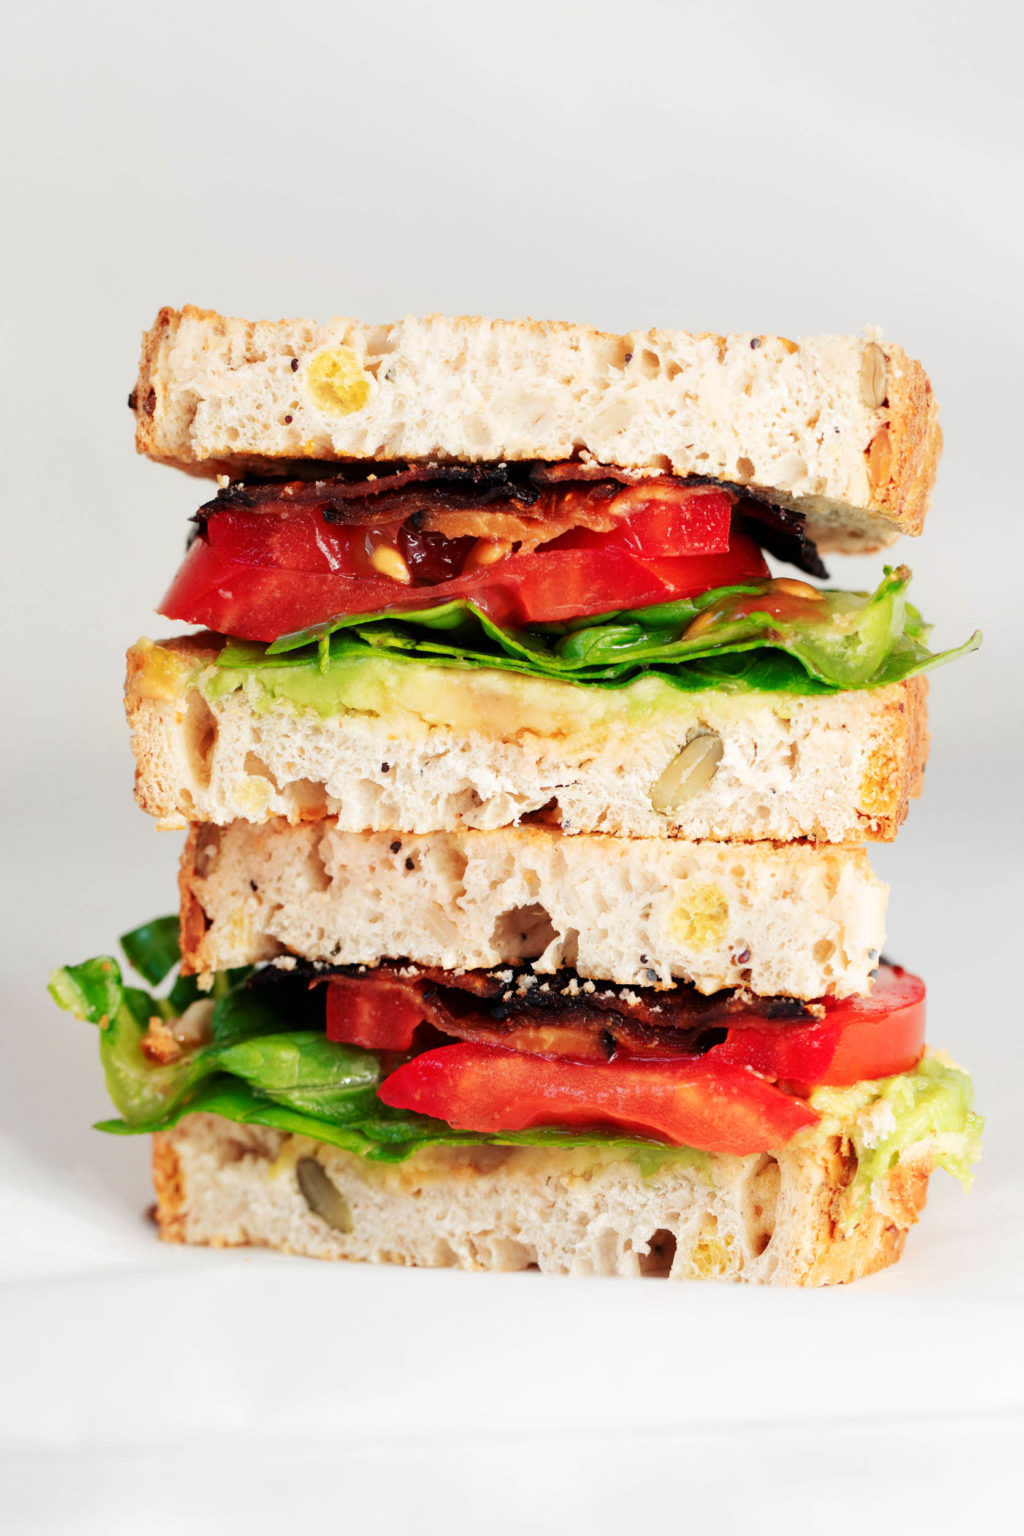 A crosswise section of a stacked, vegan BLT sandwich.